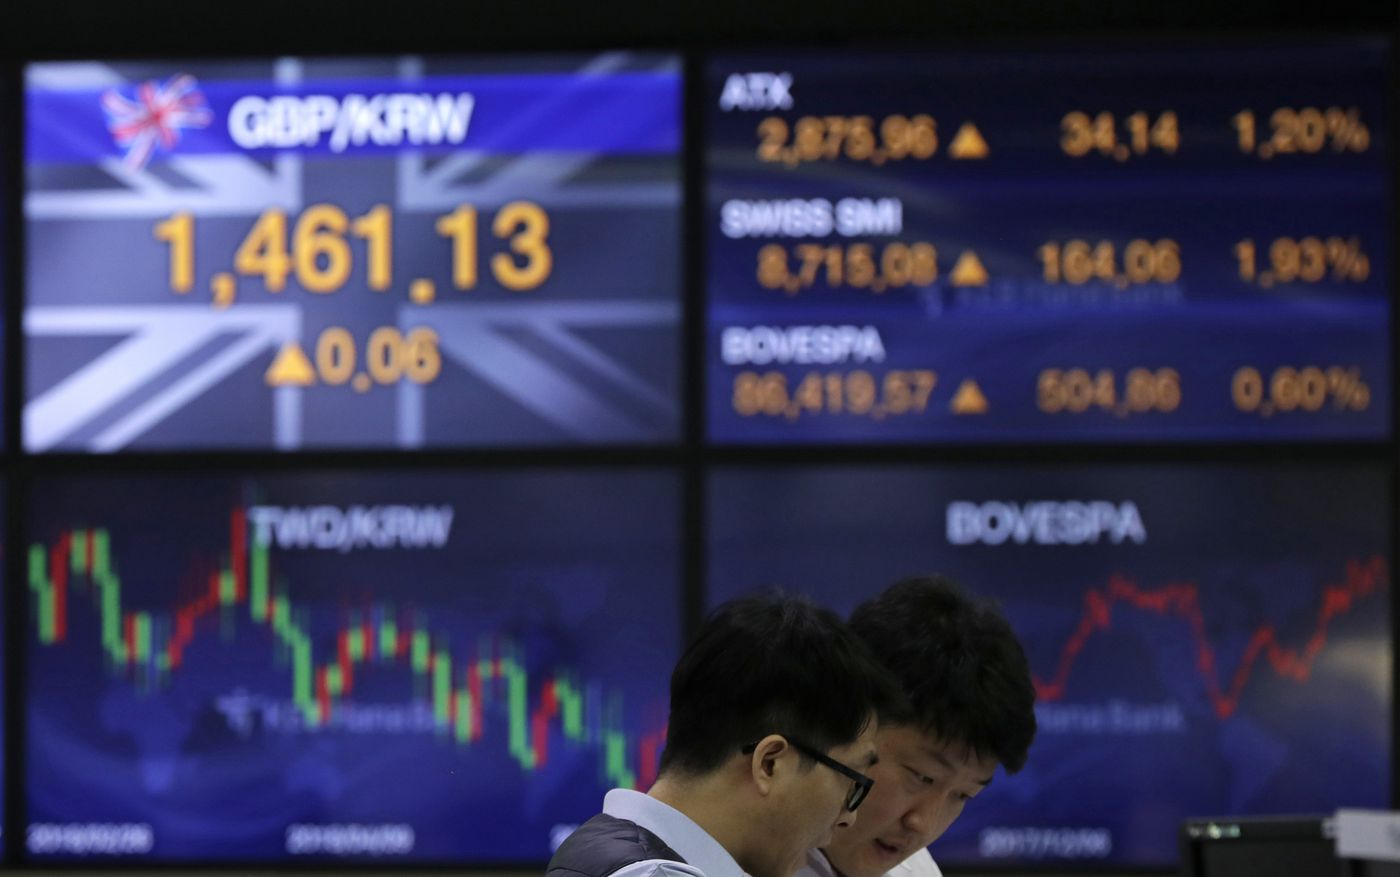 Currency traders talk near the screens showing the foreign exchange rates at the foreign exchange dealing room in Seoul, South Korea, Wednesday, Dec. 12, 2018. Asian shares rose Wednesday amid hopes for U.S.-China trade talks.(AP Photo/Lee Jin-man)